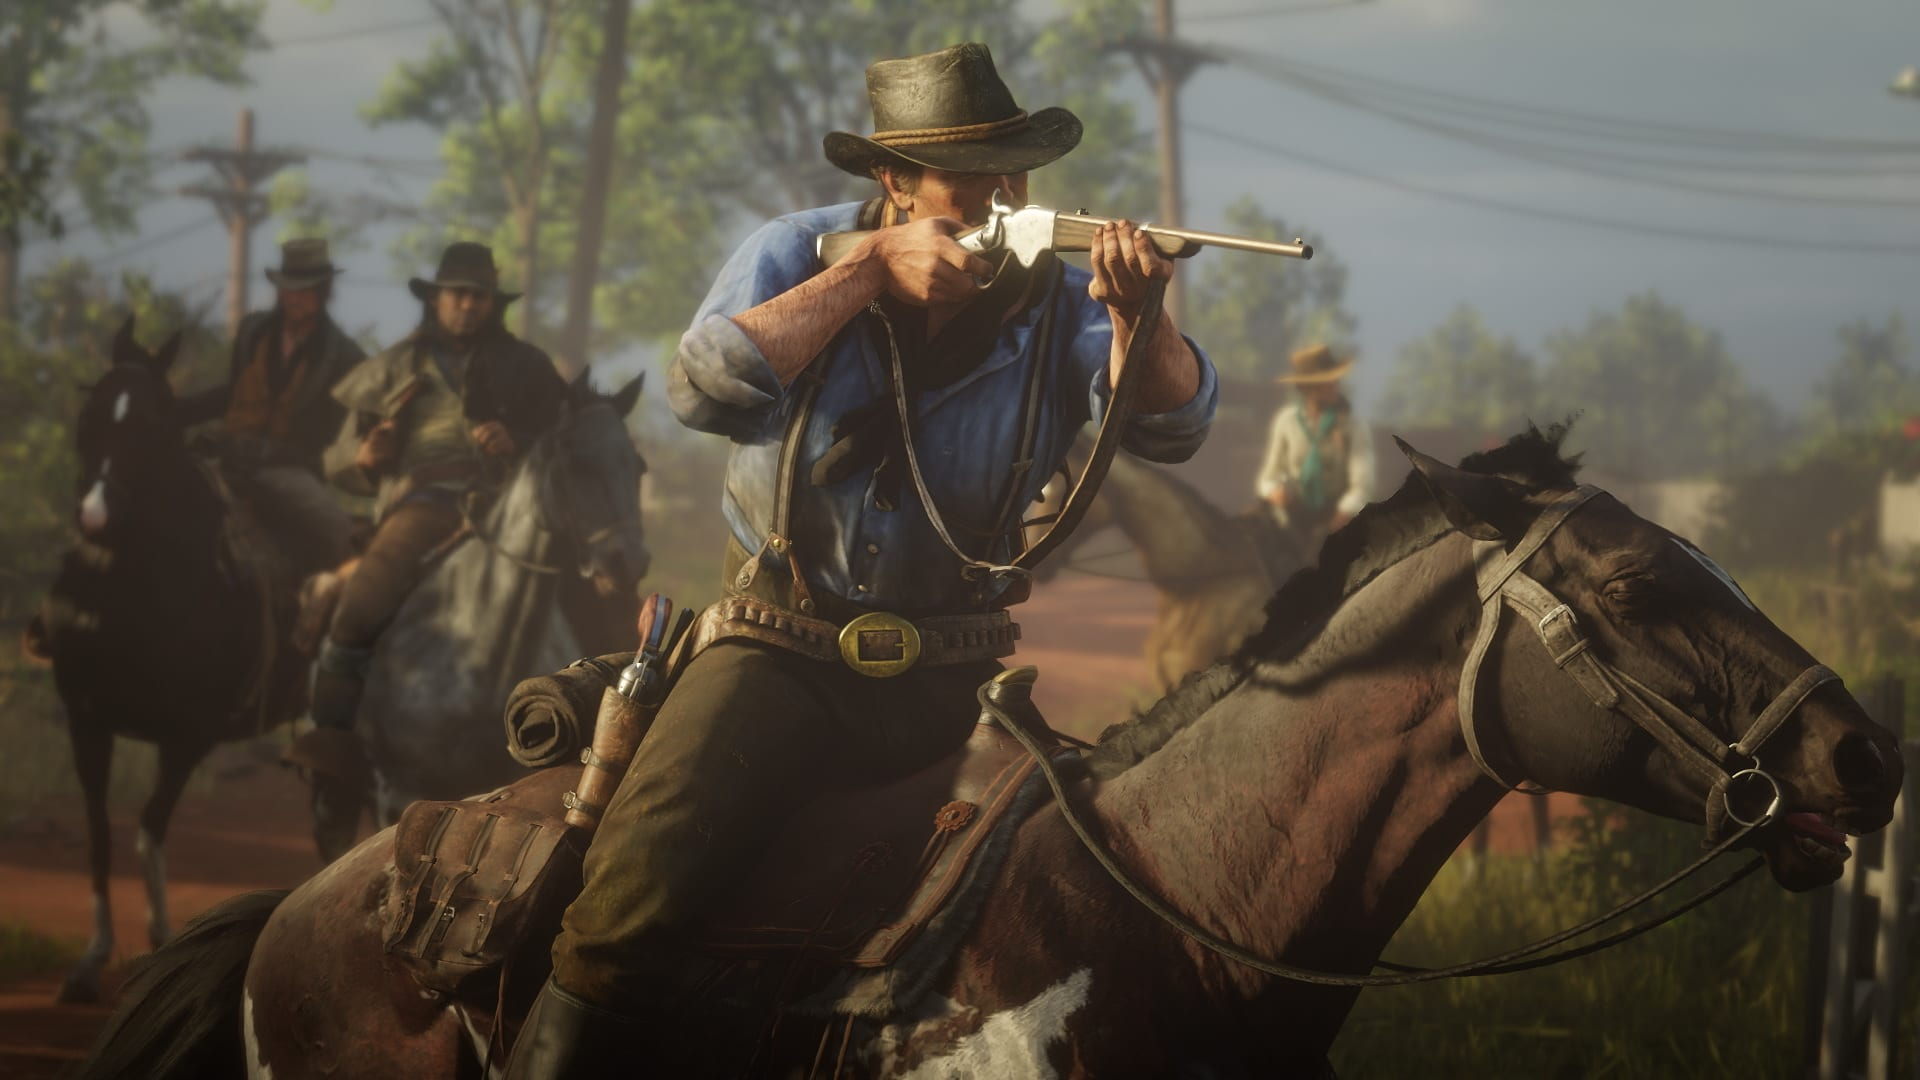 Purple Useless Redemption 2 Has Bought Over 34 Million Items; Grand Theft Auto V Over 135 Million 1